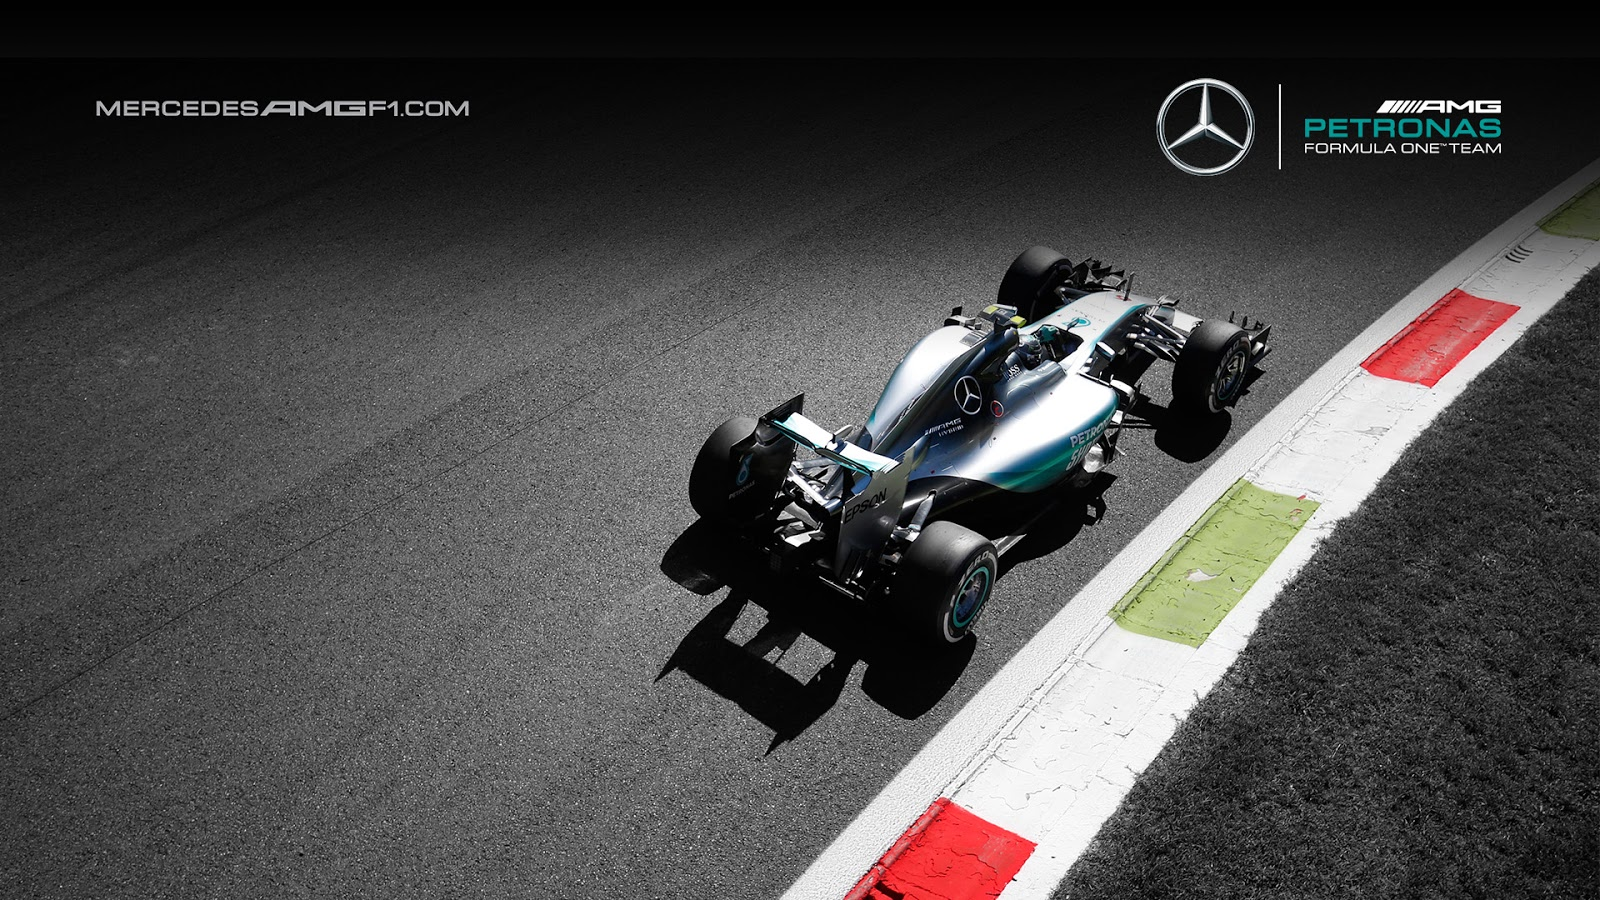 Mercedes w08 f1 wallpaper 2